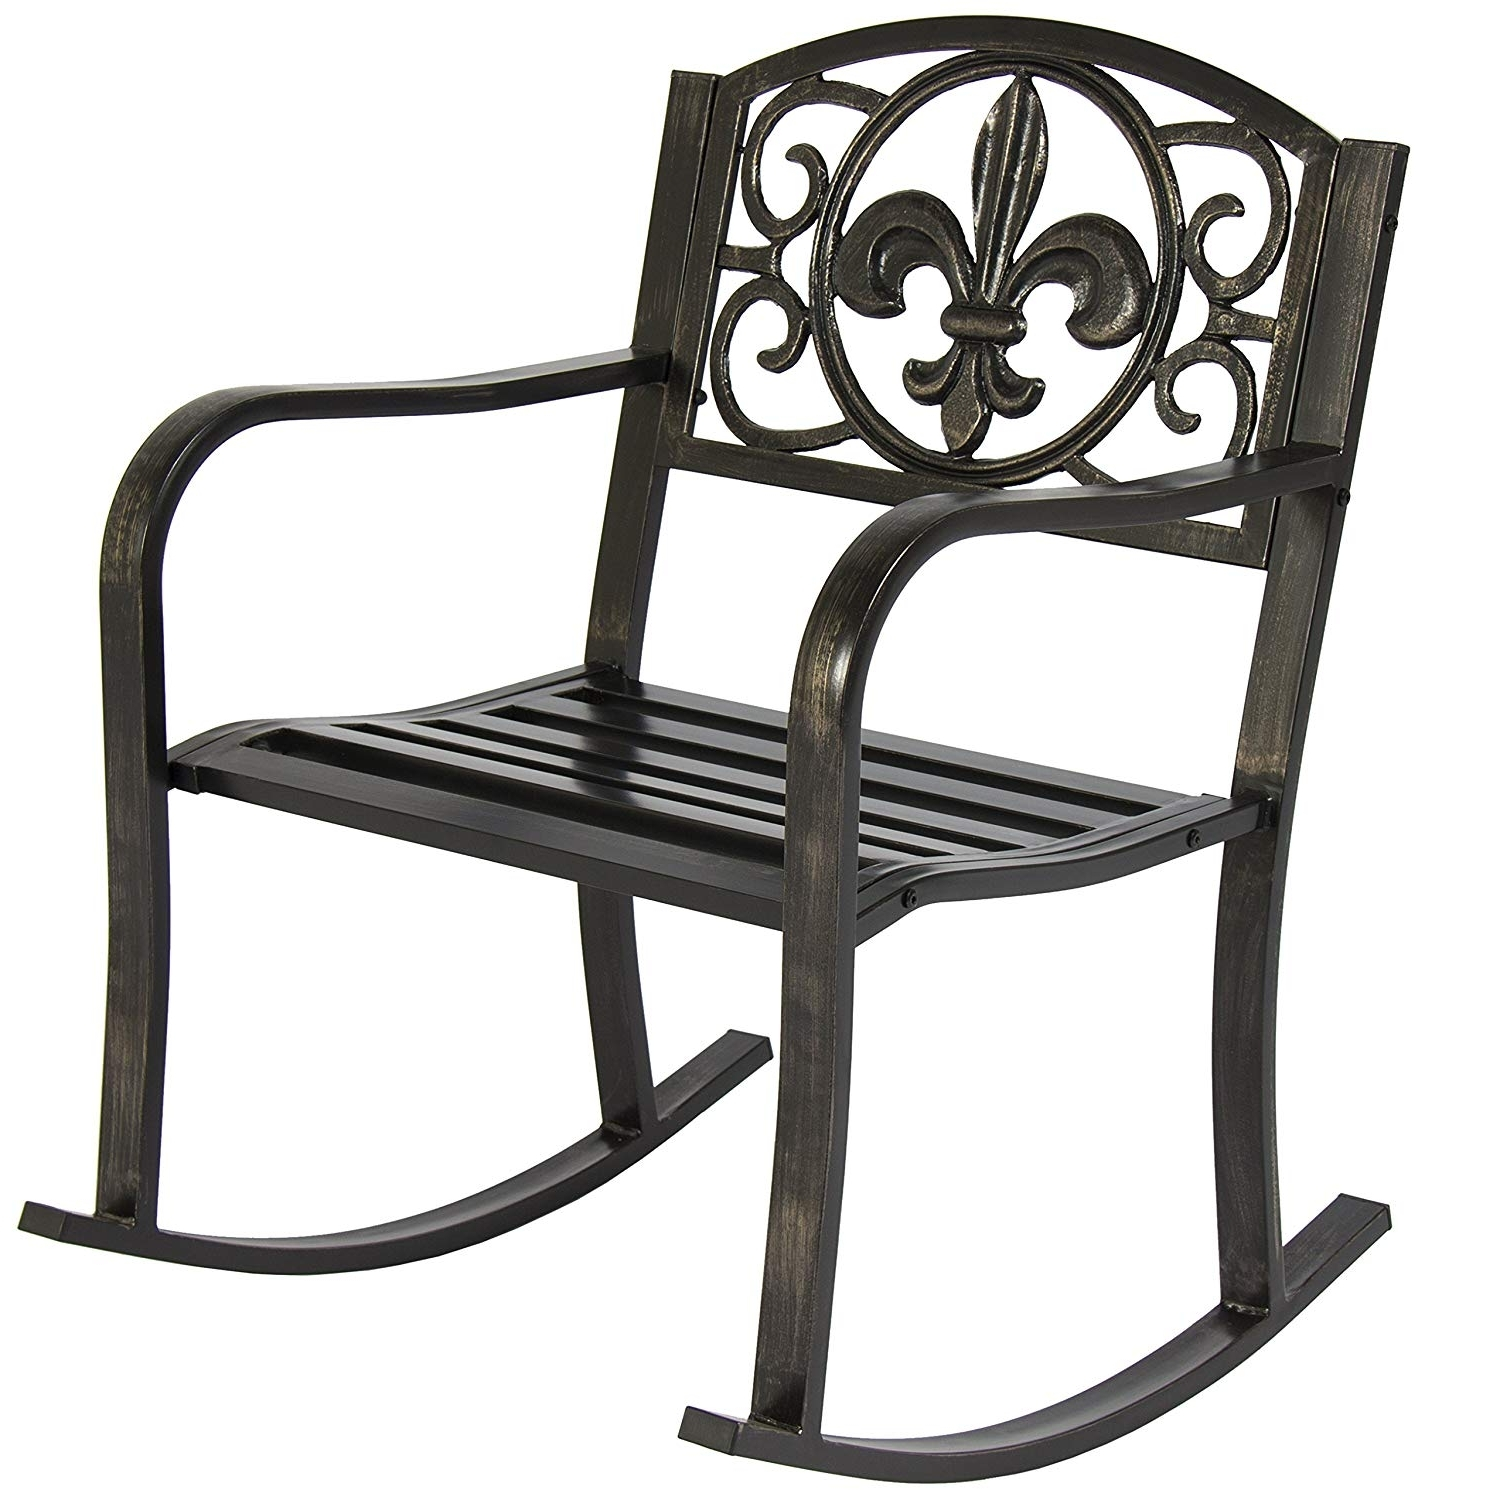 Patio Rocking Chairs And Gliders For Newest Amazon : Best Choice Products Metal Rocking Chair Seat For Patio (View 8 of 15)